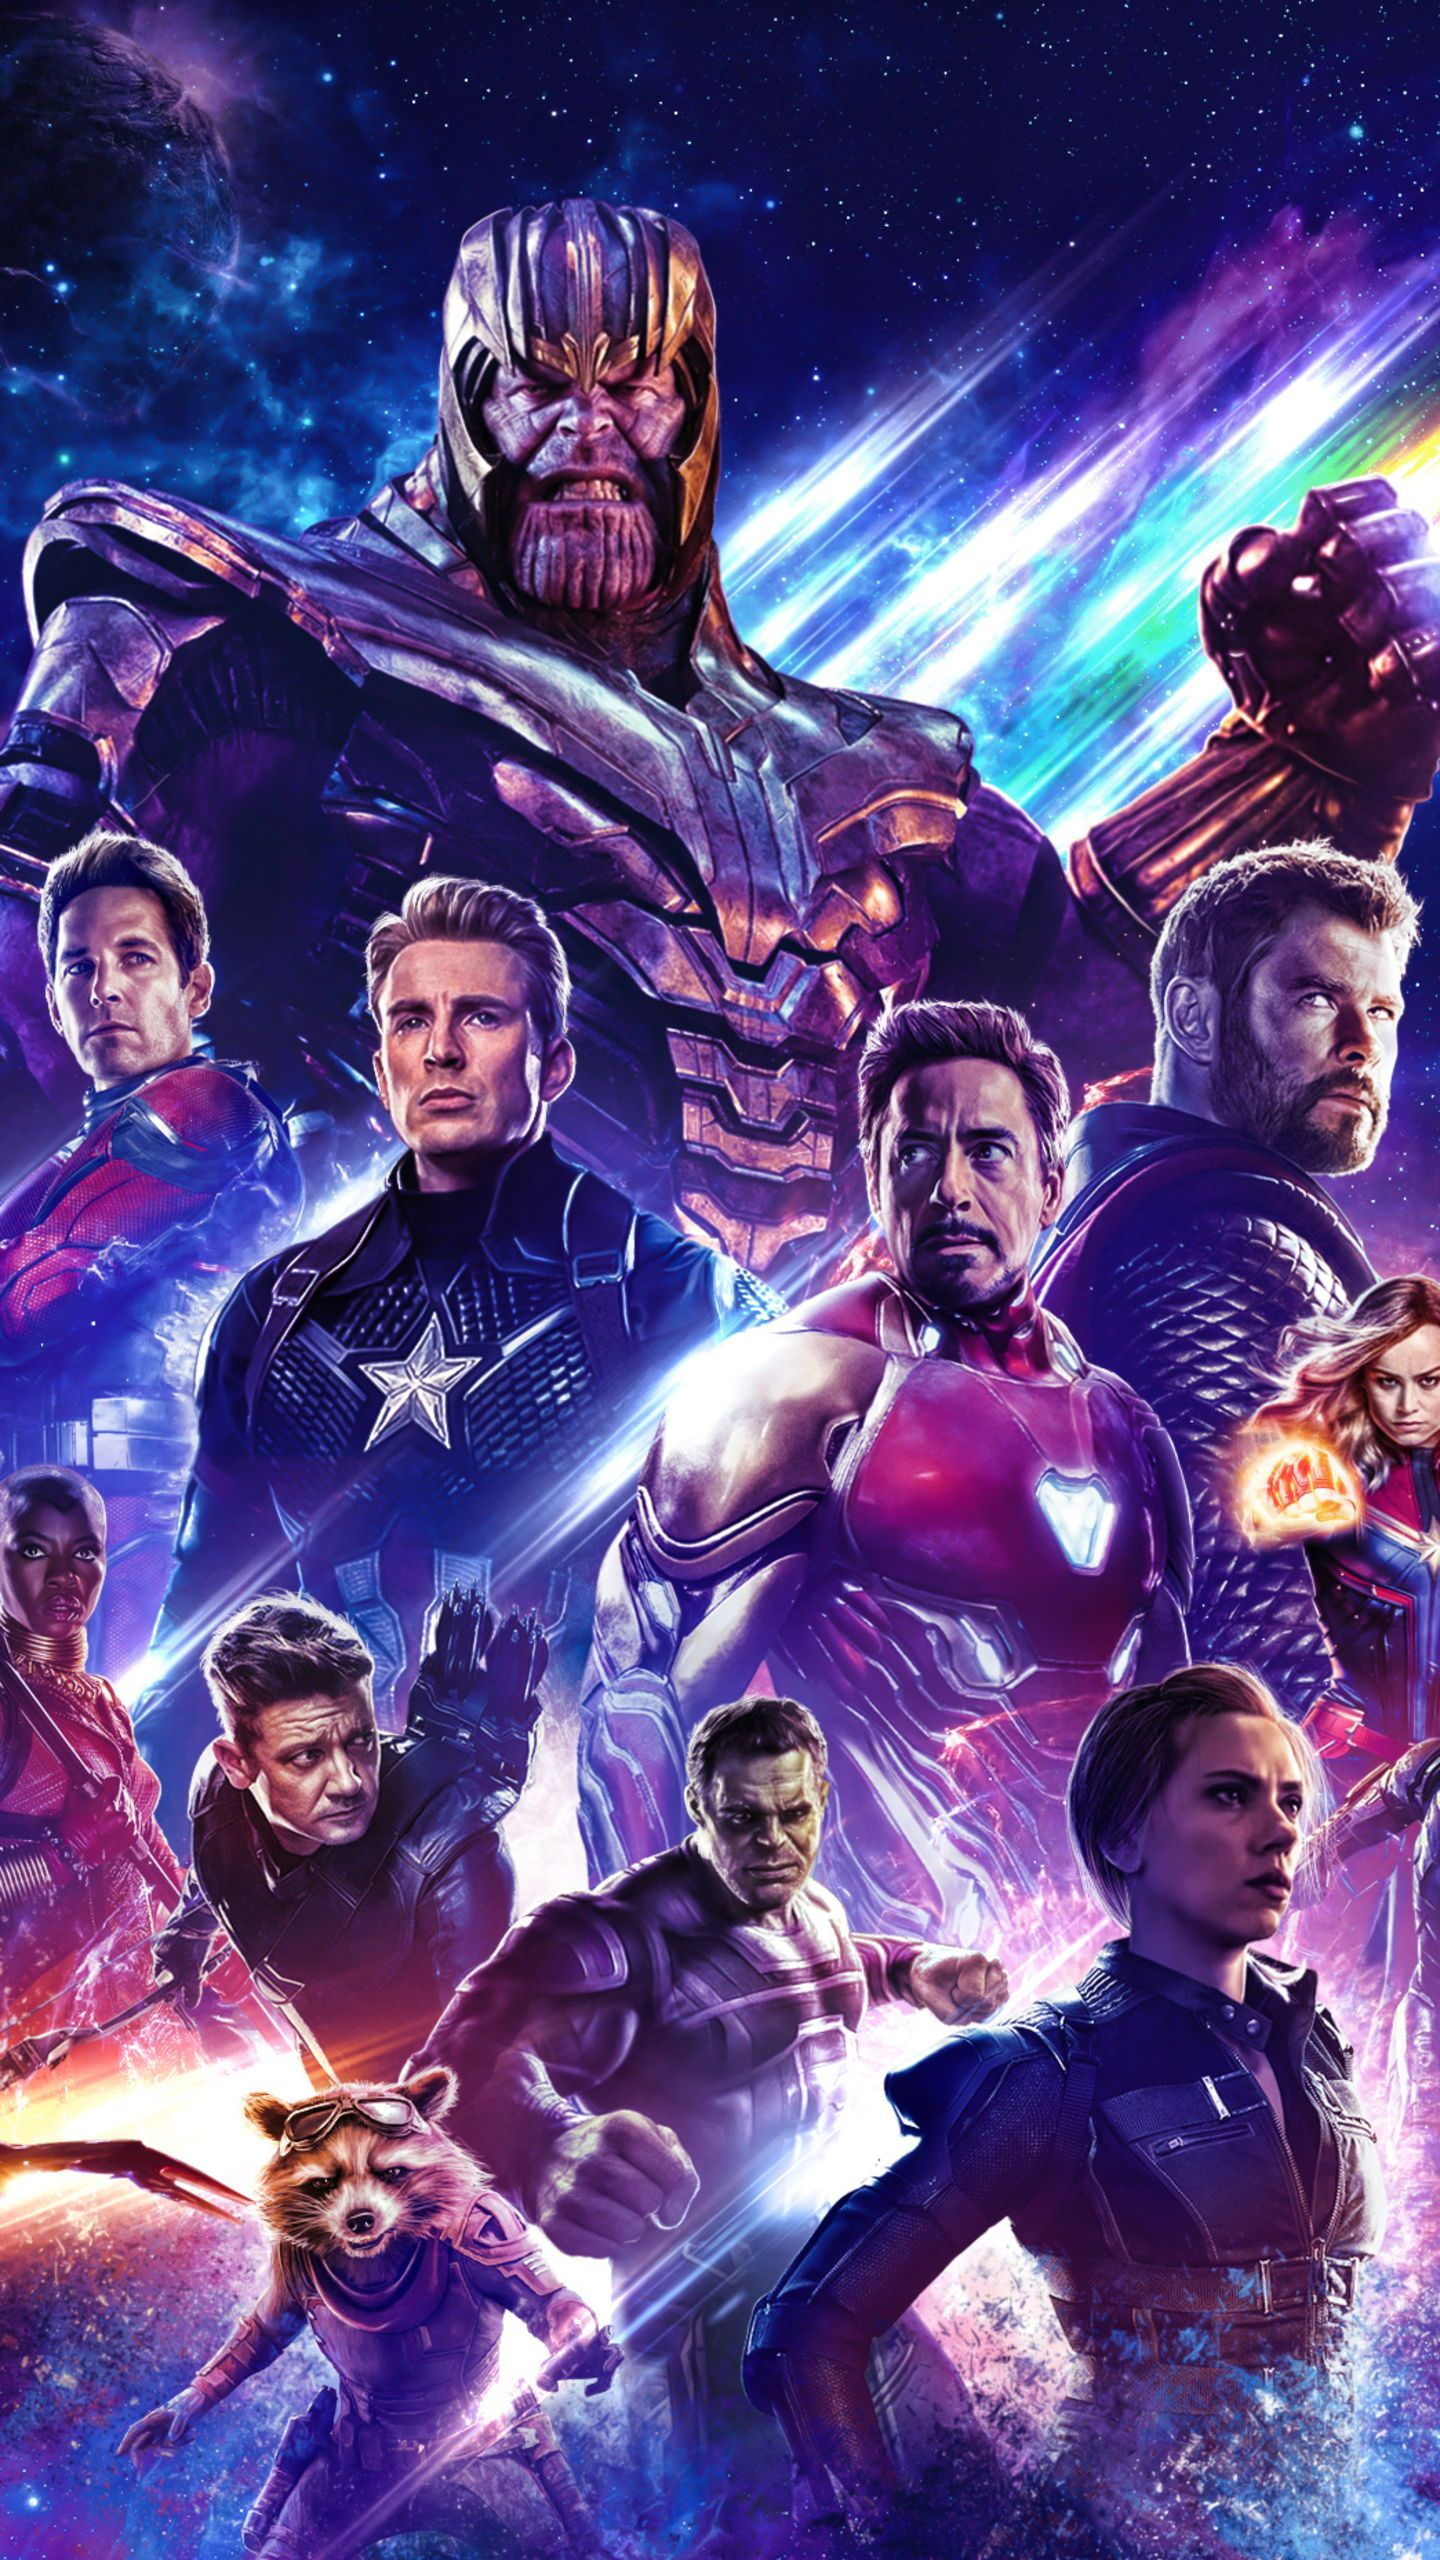 free download the movie Avengers Endgame from the link